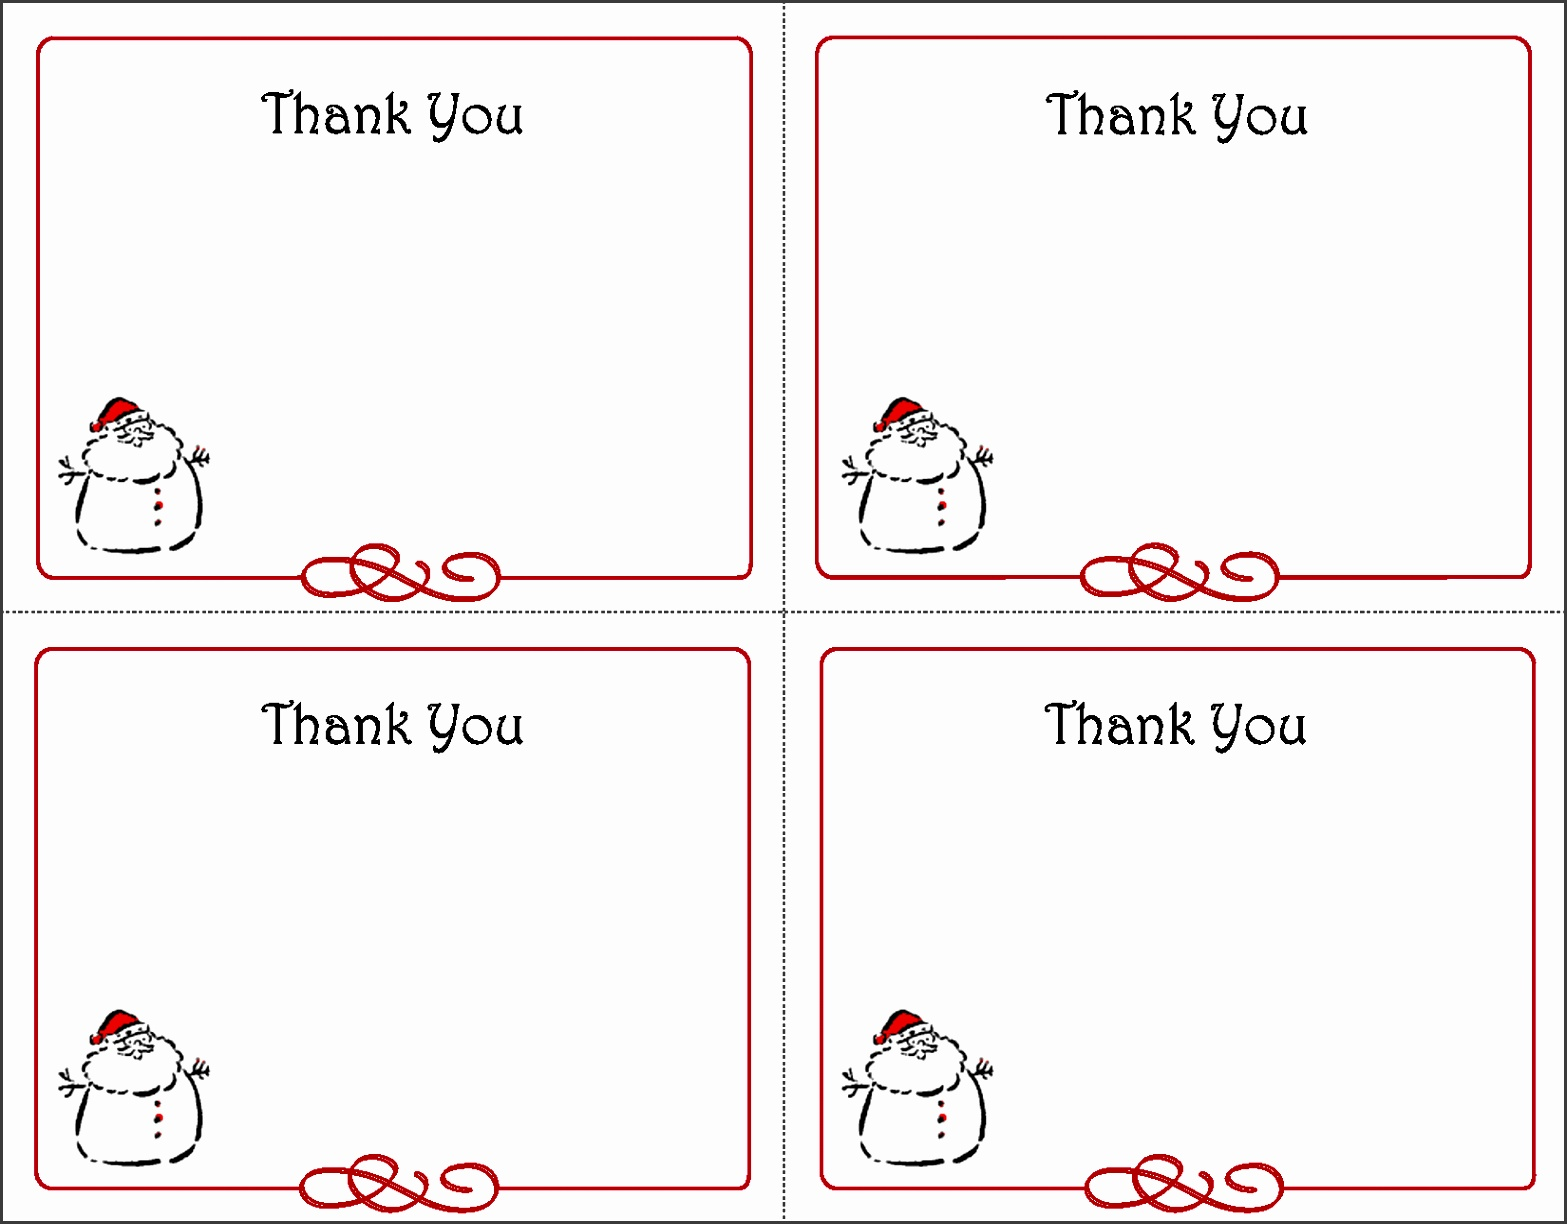 line Christmas Gift Certificate Templates Free Choice Image Free line Gift Certificate Templates New Card Invitation Samples Thank You Cards Free